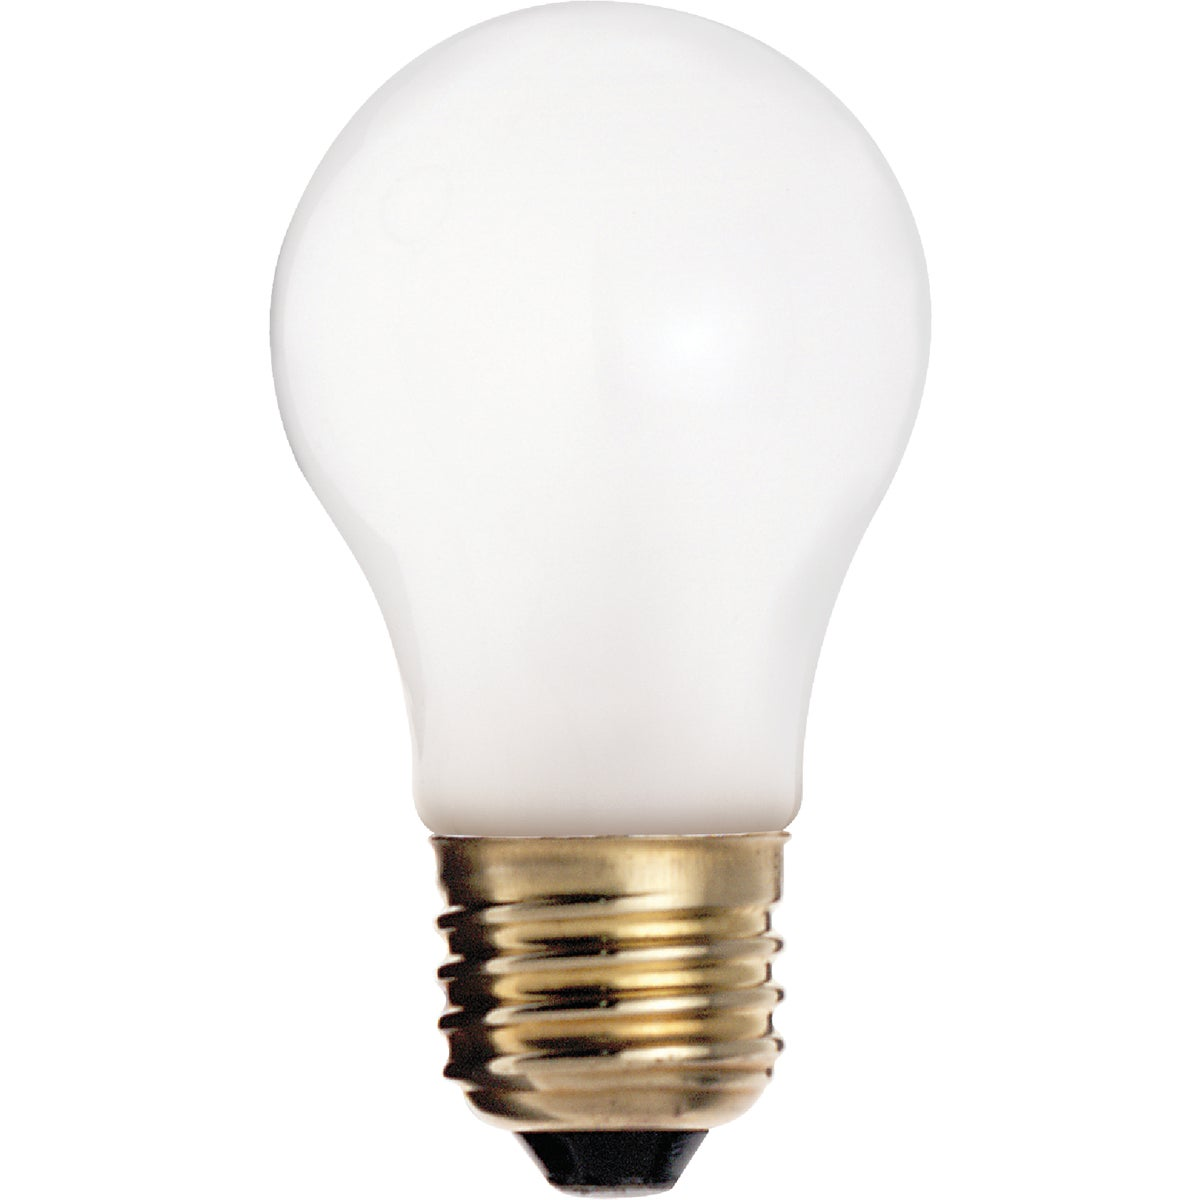 60W WHT CEILING FAN BULB